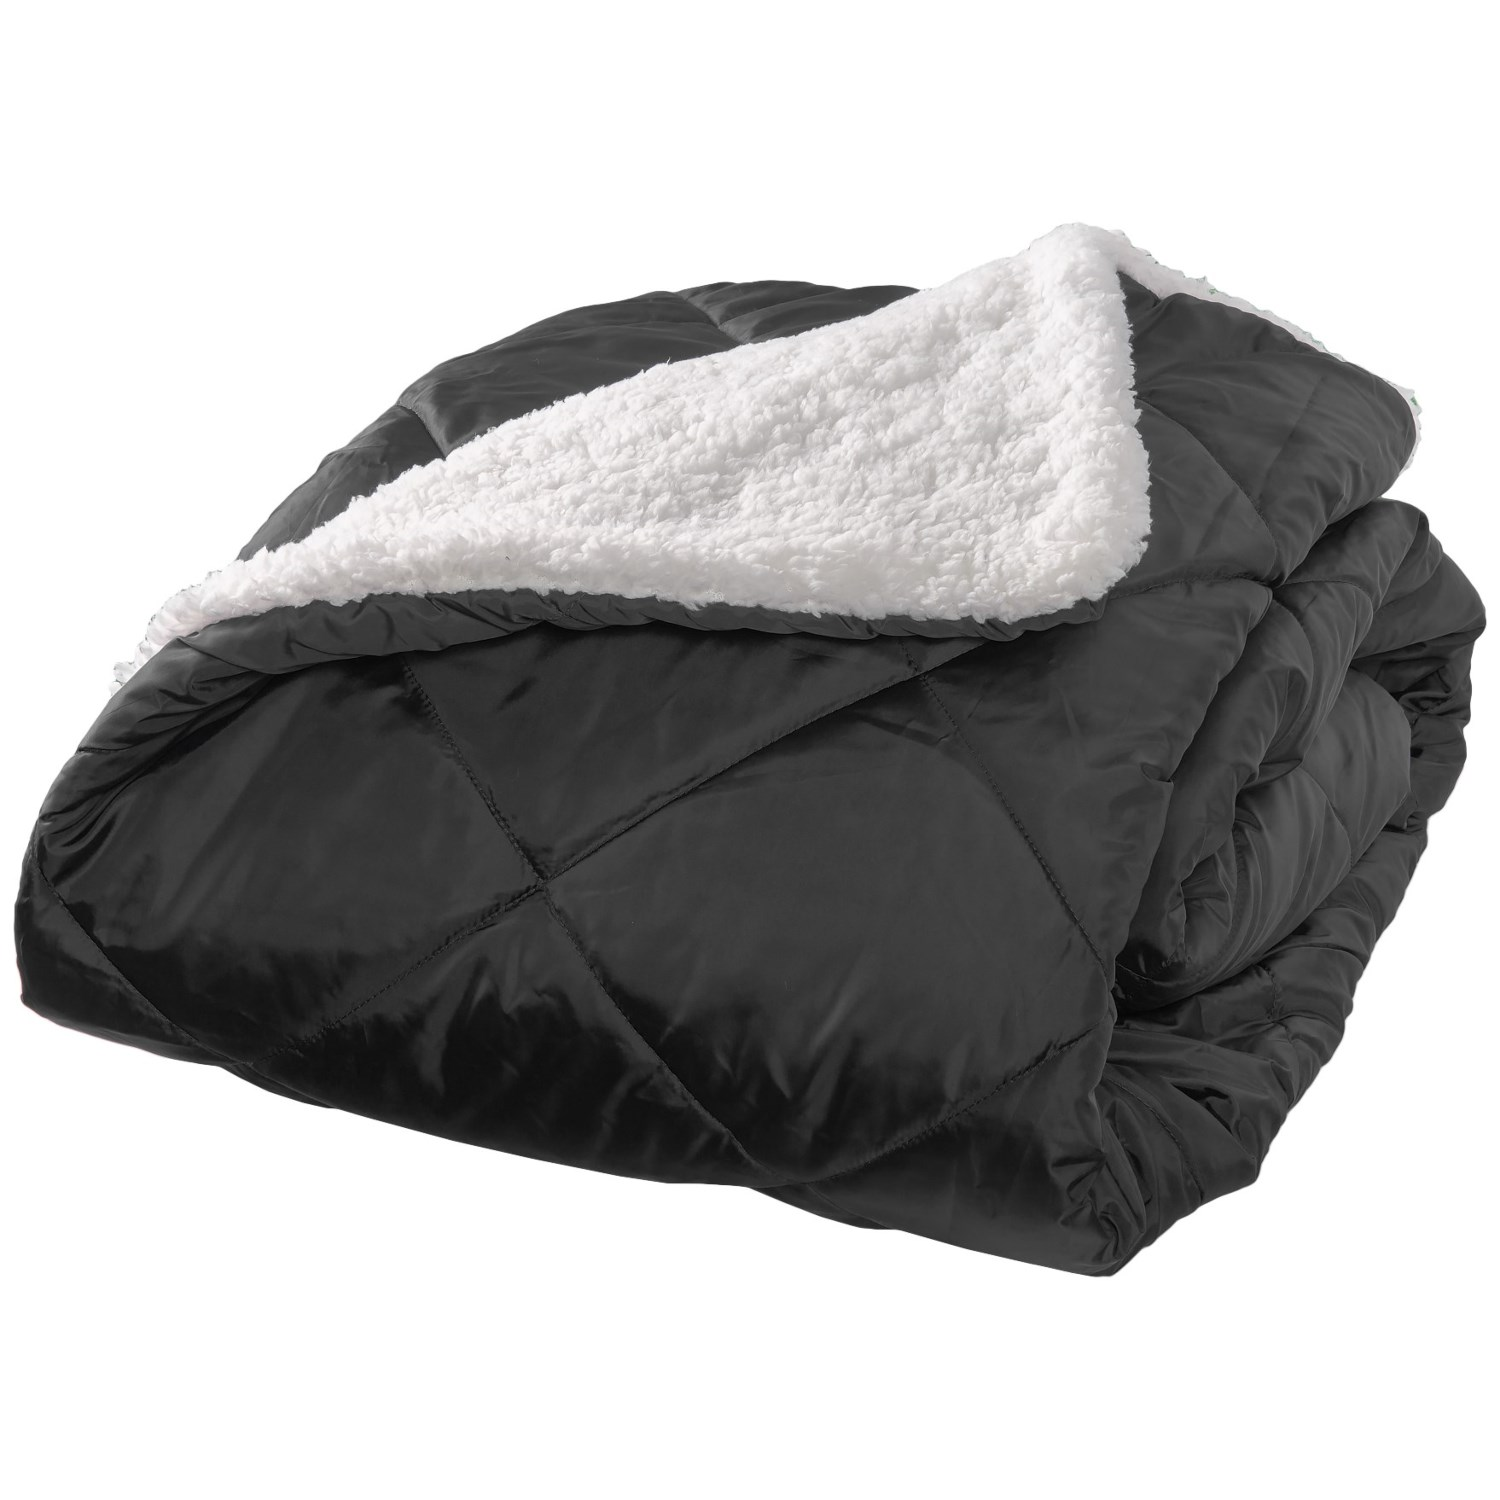 "Aspen Rolled Packable Sherpa Throw Blanket - 50x70"" in Black ... d31068f14"